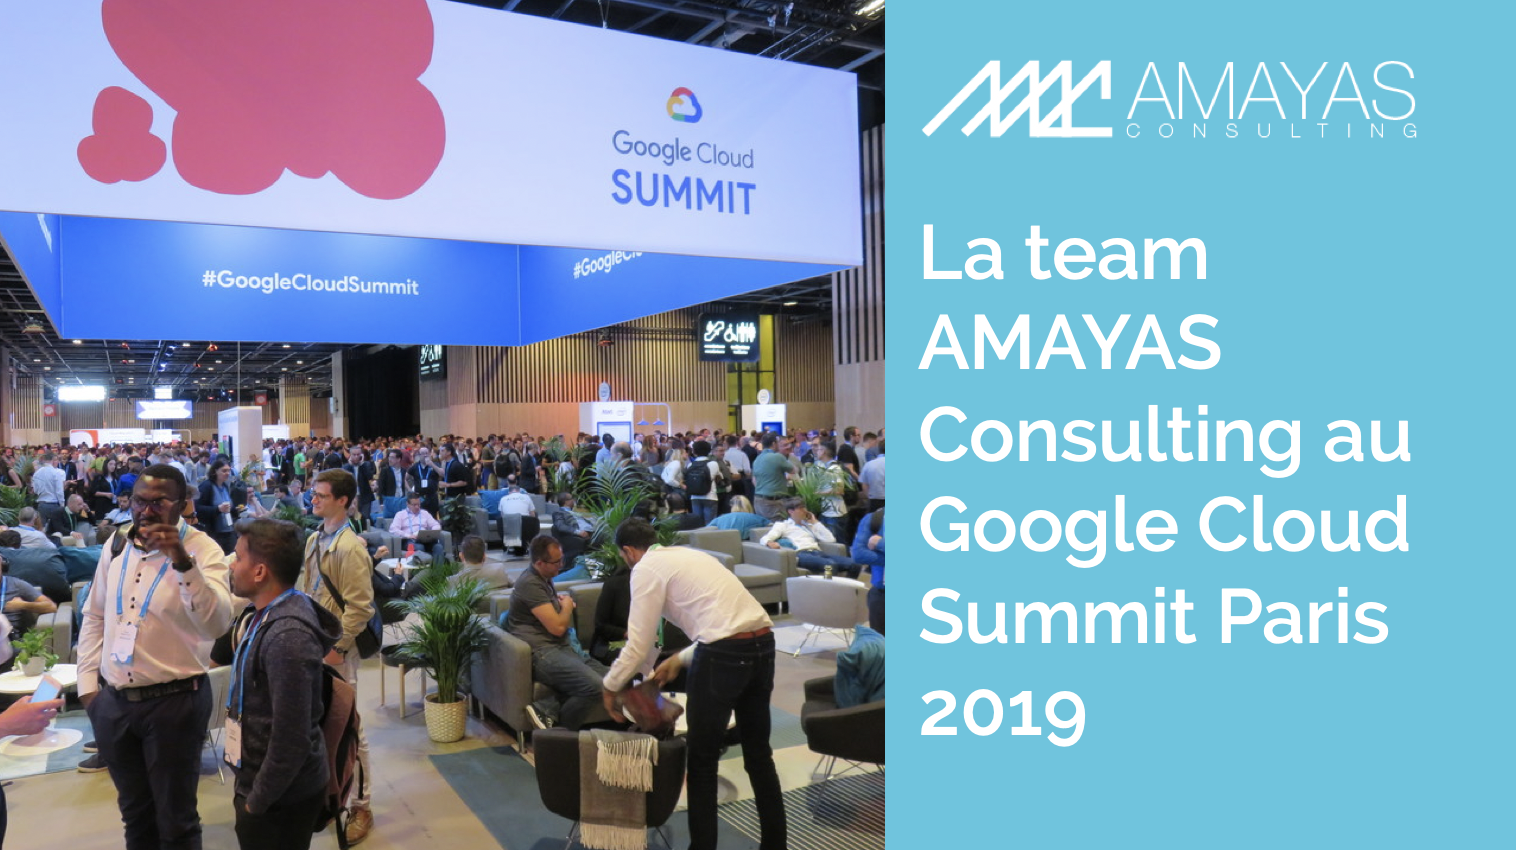 La team AMAYAS Consulting au Google Cloud Summit Paris 2019